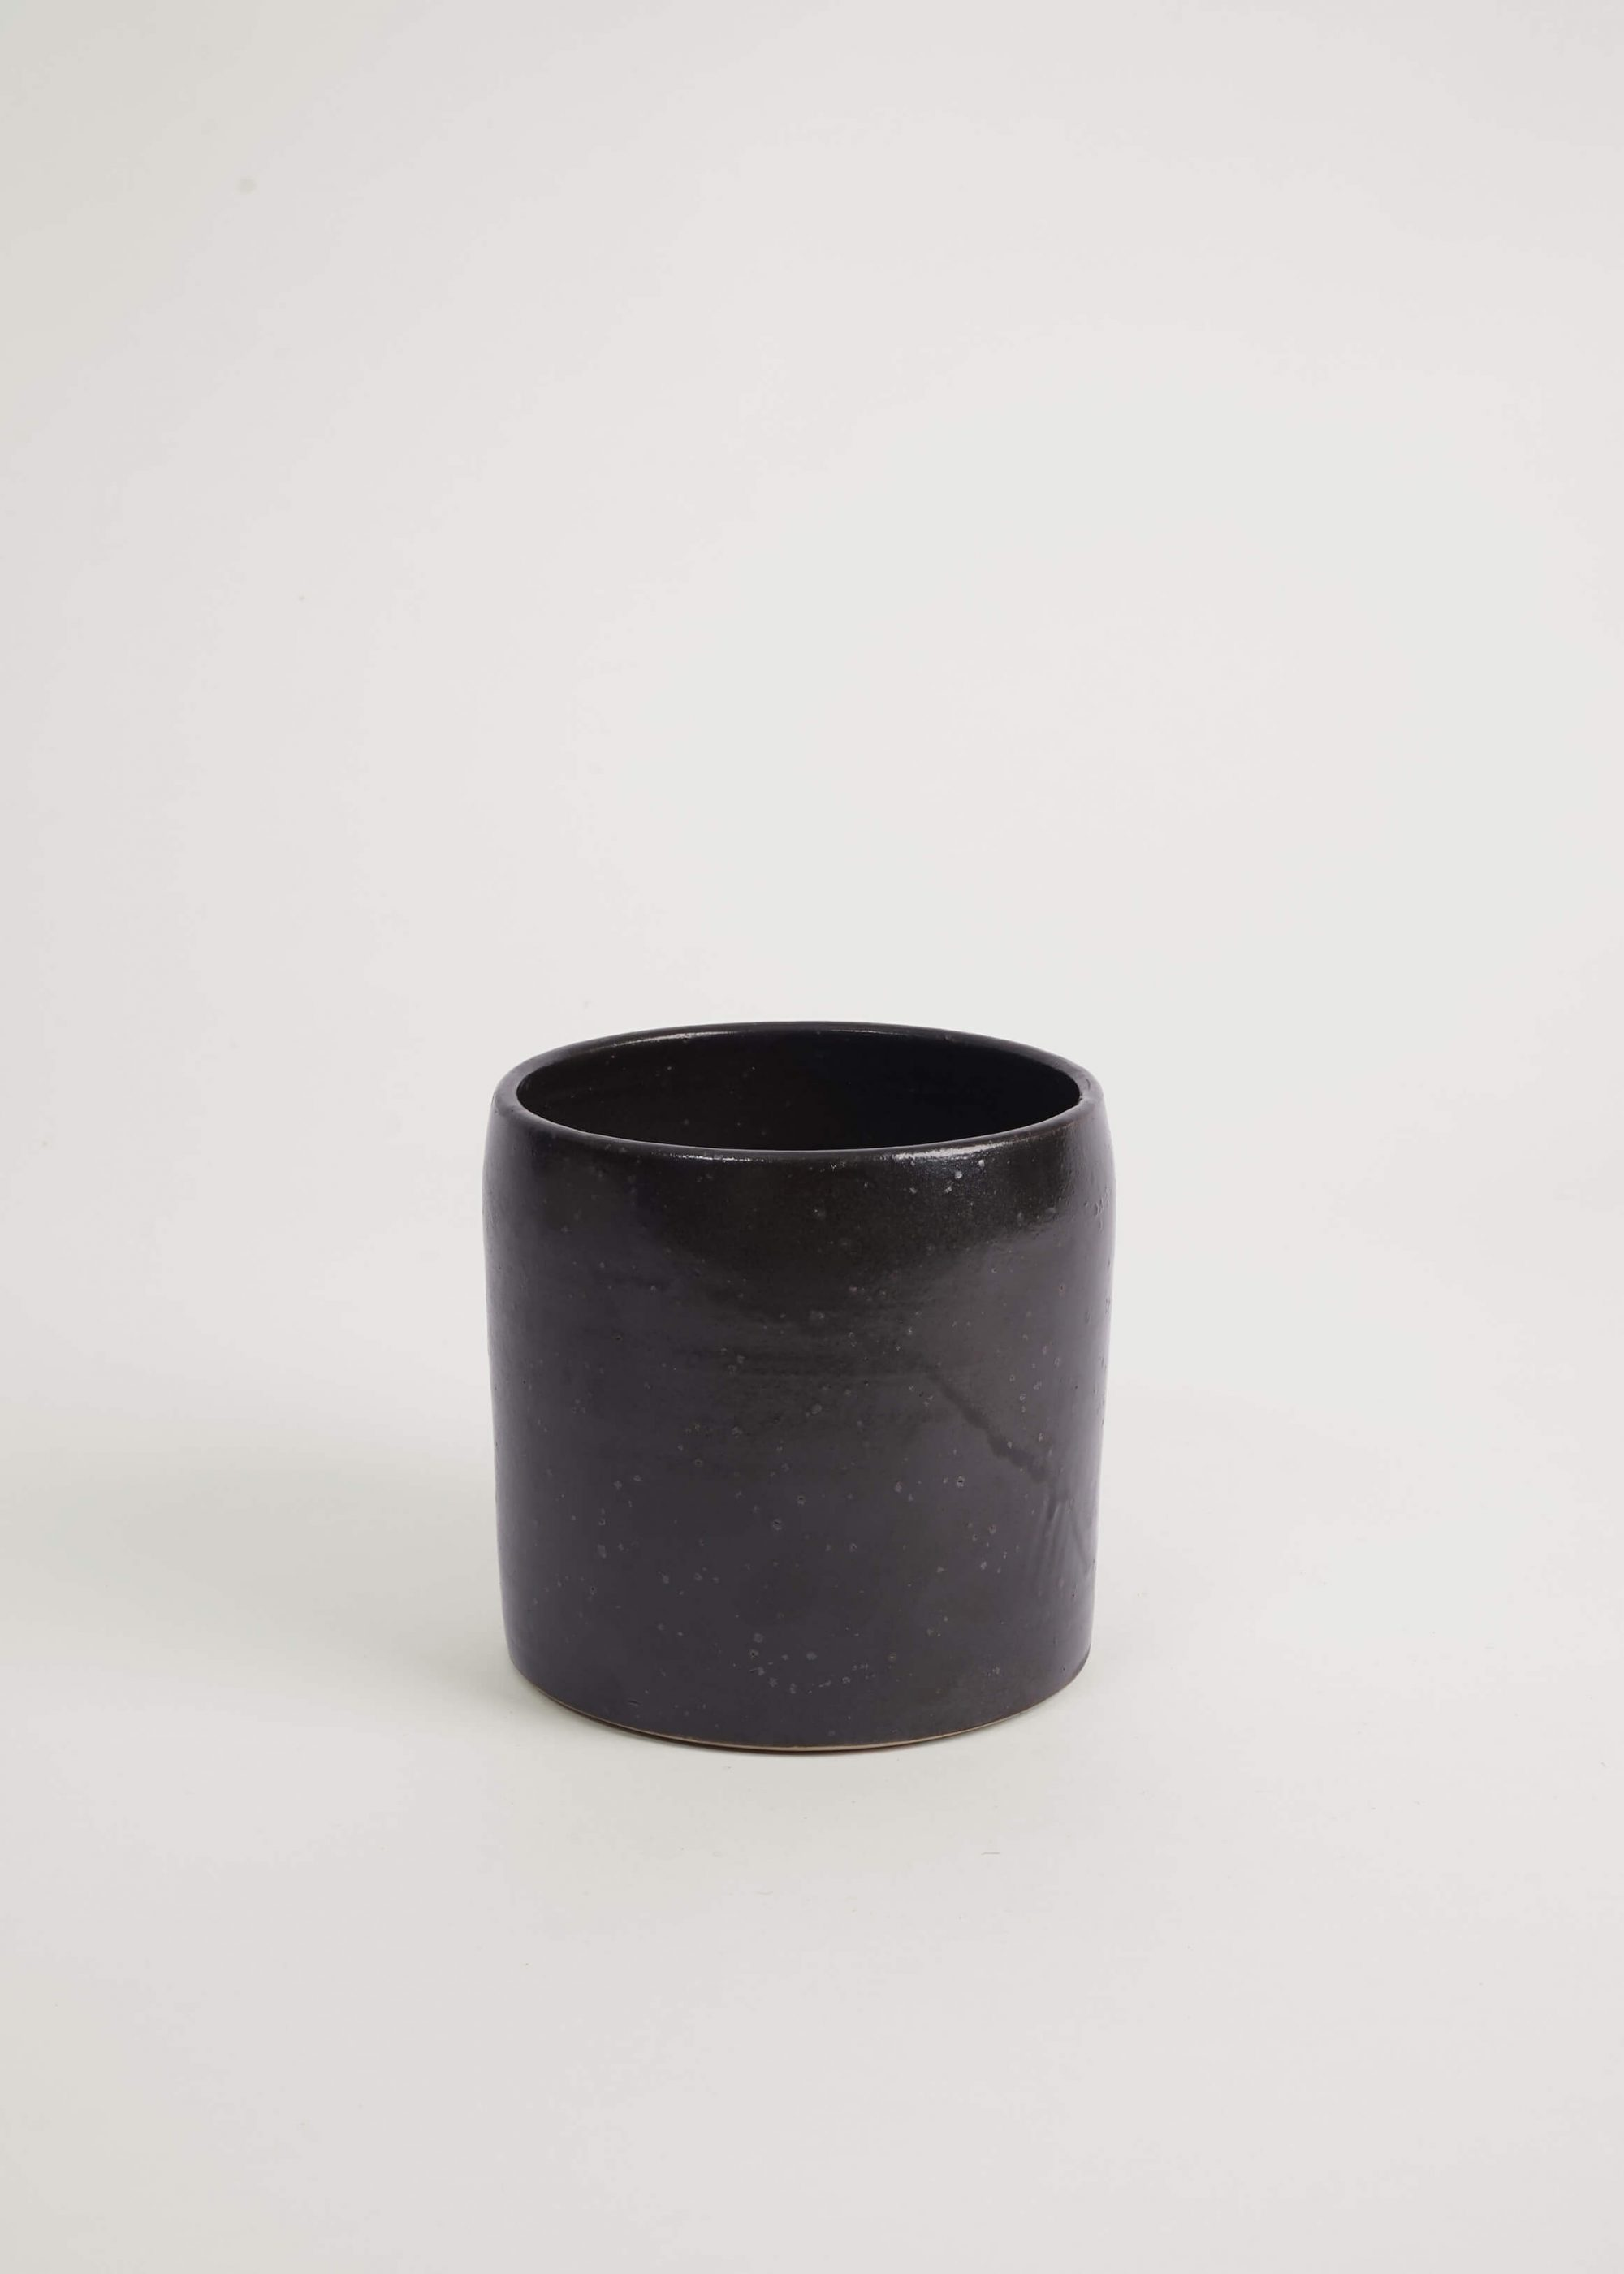 Product image for N° ICD6 Burri Plant Pot L